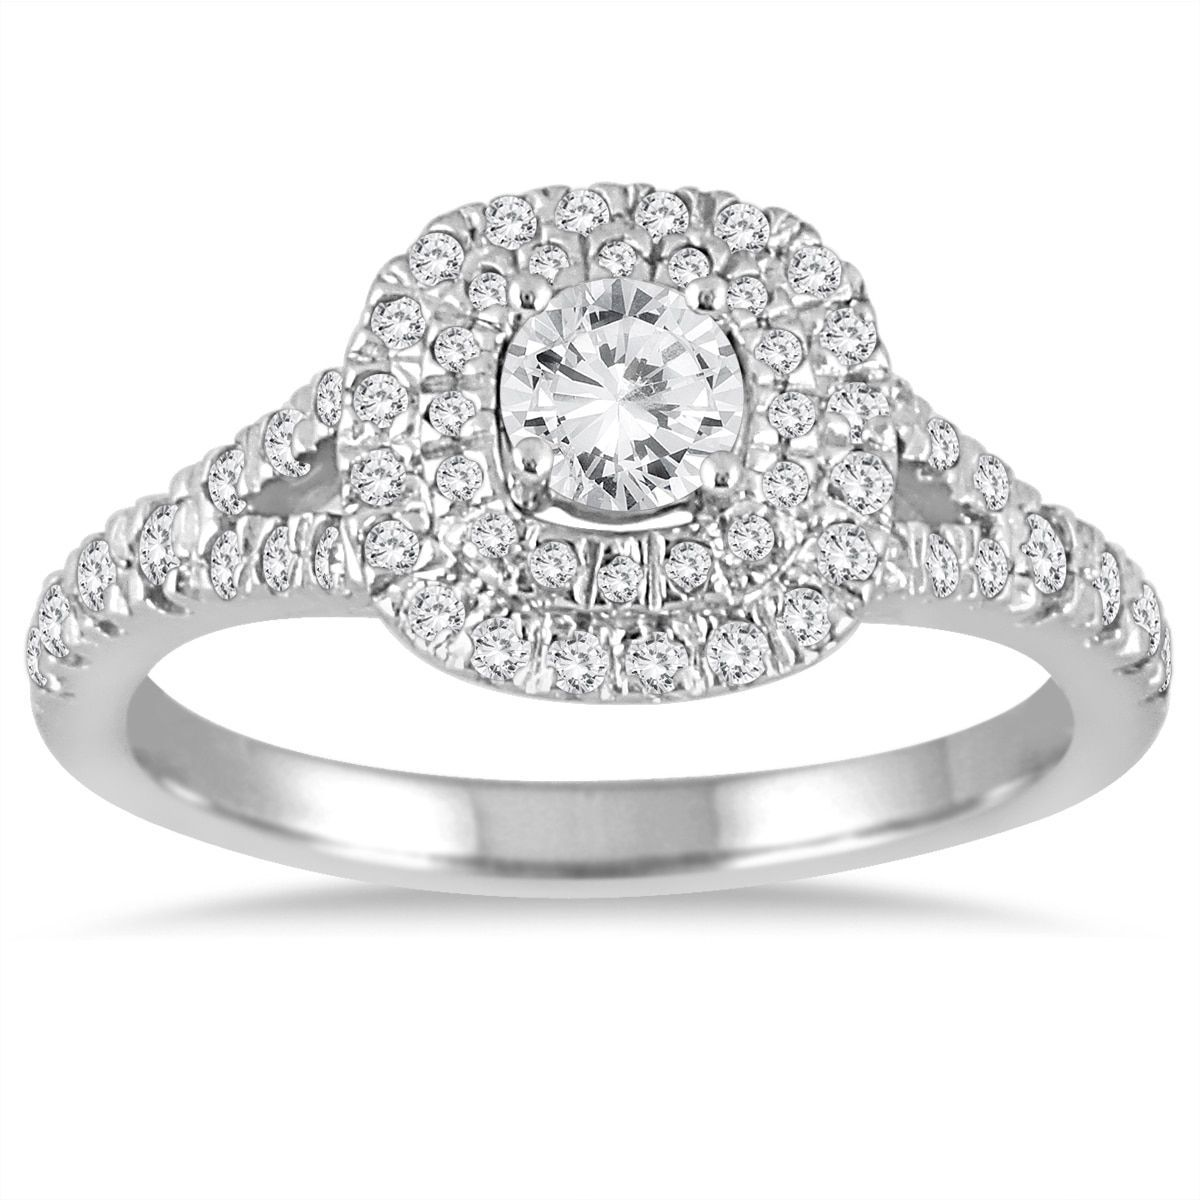 Marquee Jewels 3/4 Carat Diamond Double Halo Engagement Ring in 14K Gold